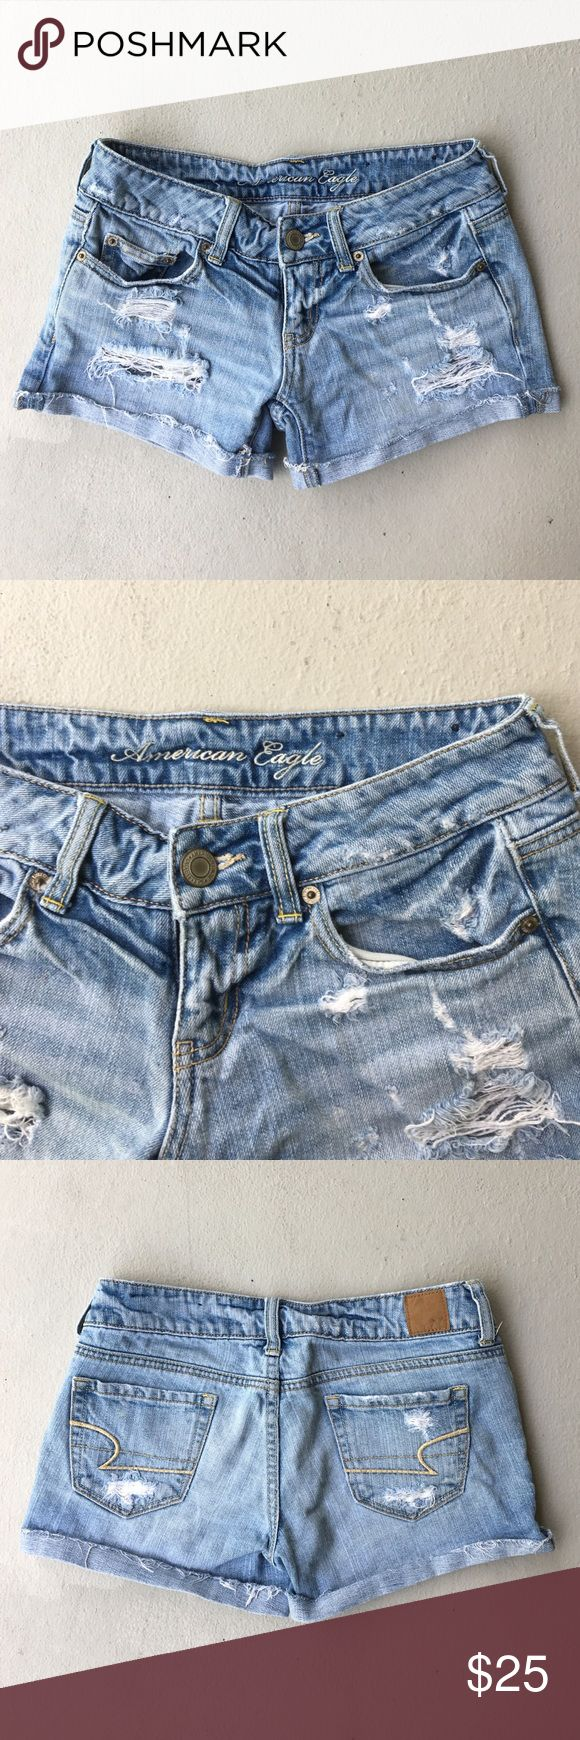 American Eagle Size 0 Light Denim ripped shorts American Eagle Light Denim / jeans ripped shorts Size Zero. AE signature ripped & distressed look. American Eagle Outfitters Shorts Jean Shorts